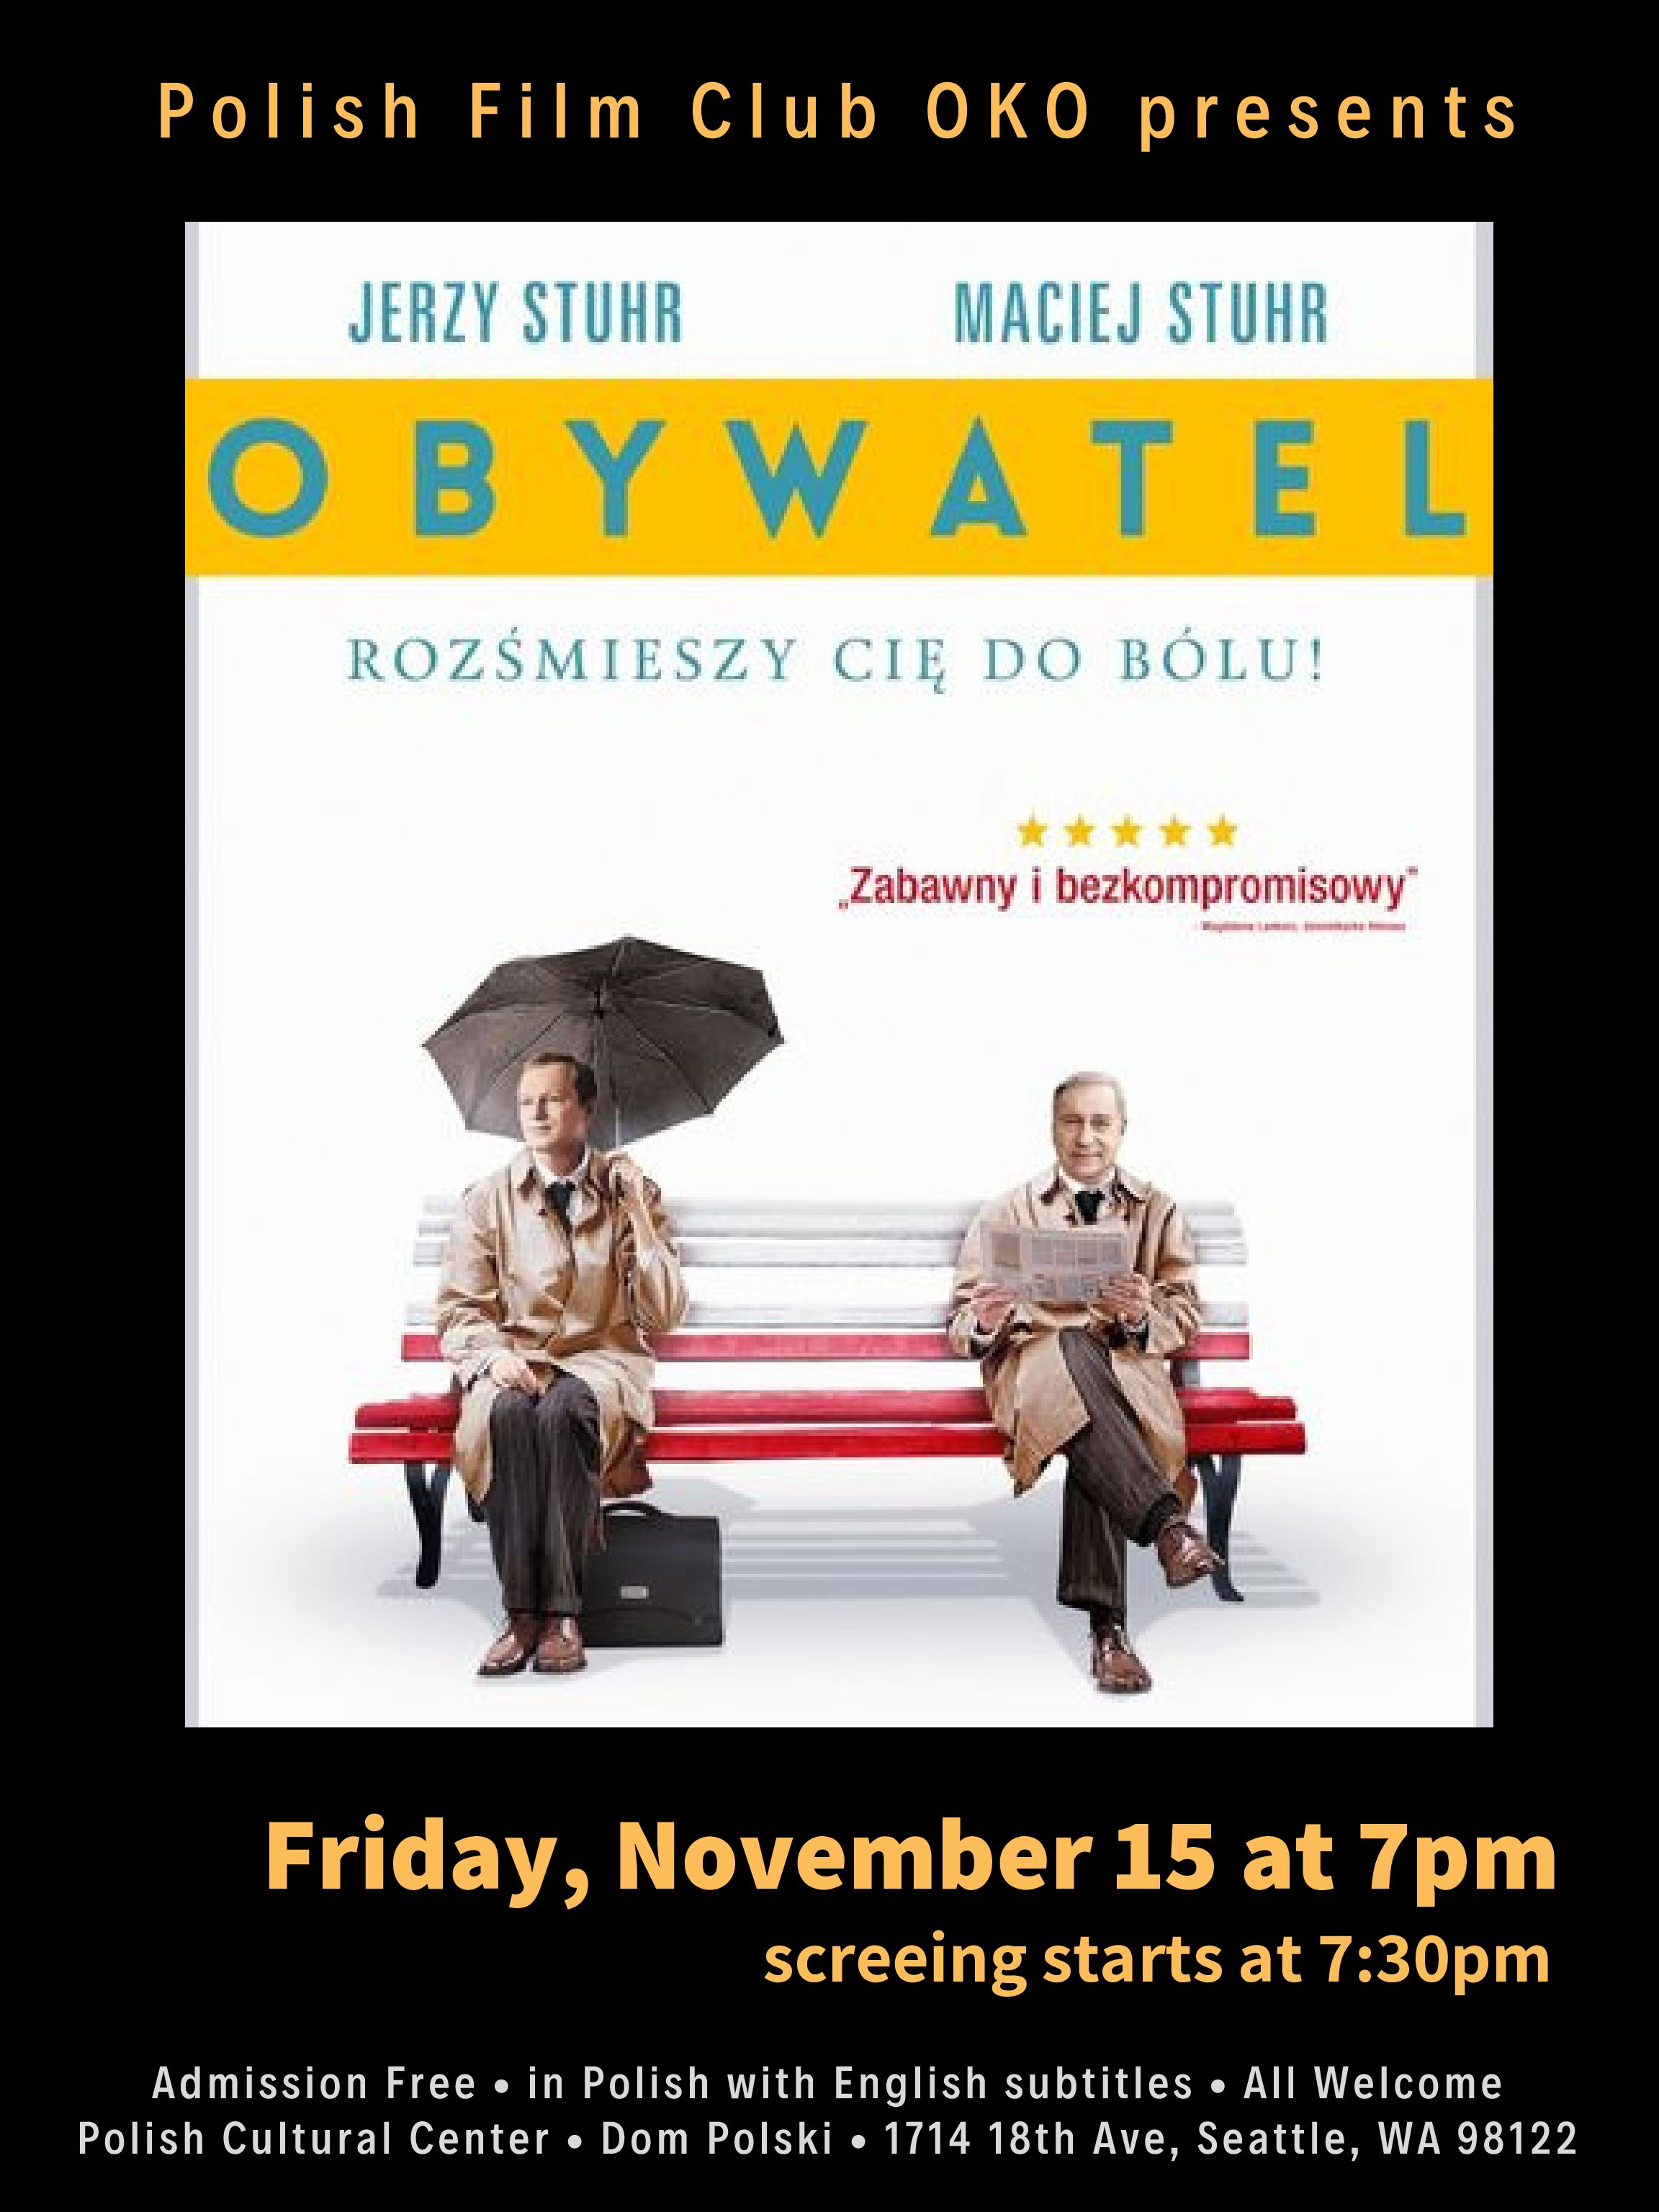 Polish Film Club OKO presents: OBYWATEL (Citizen)